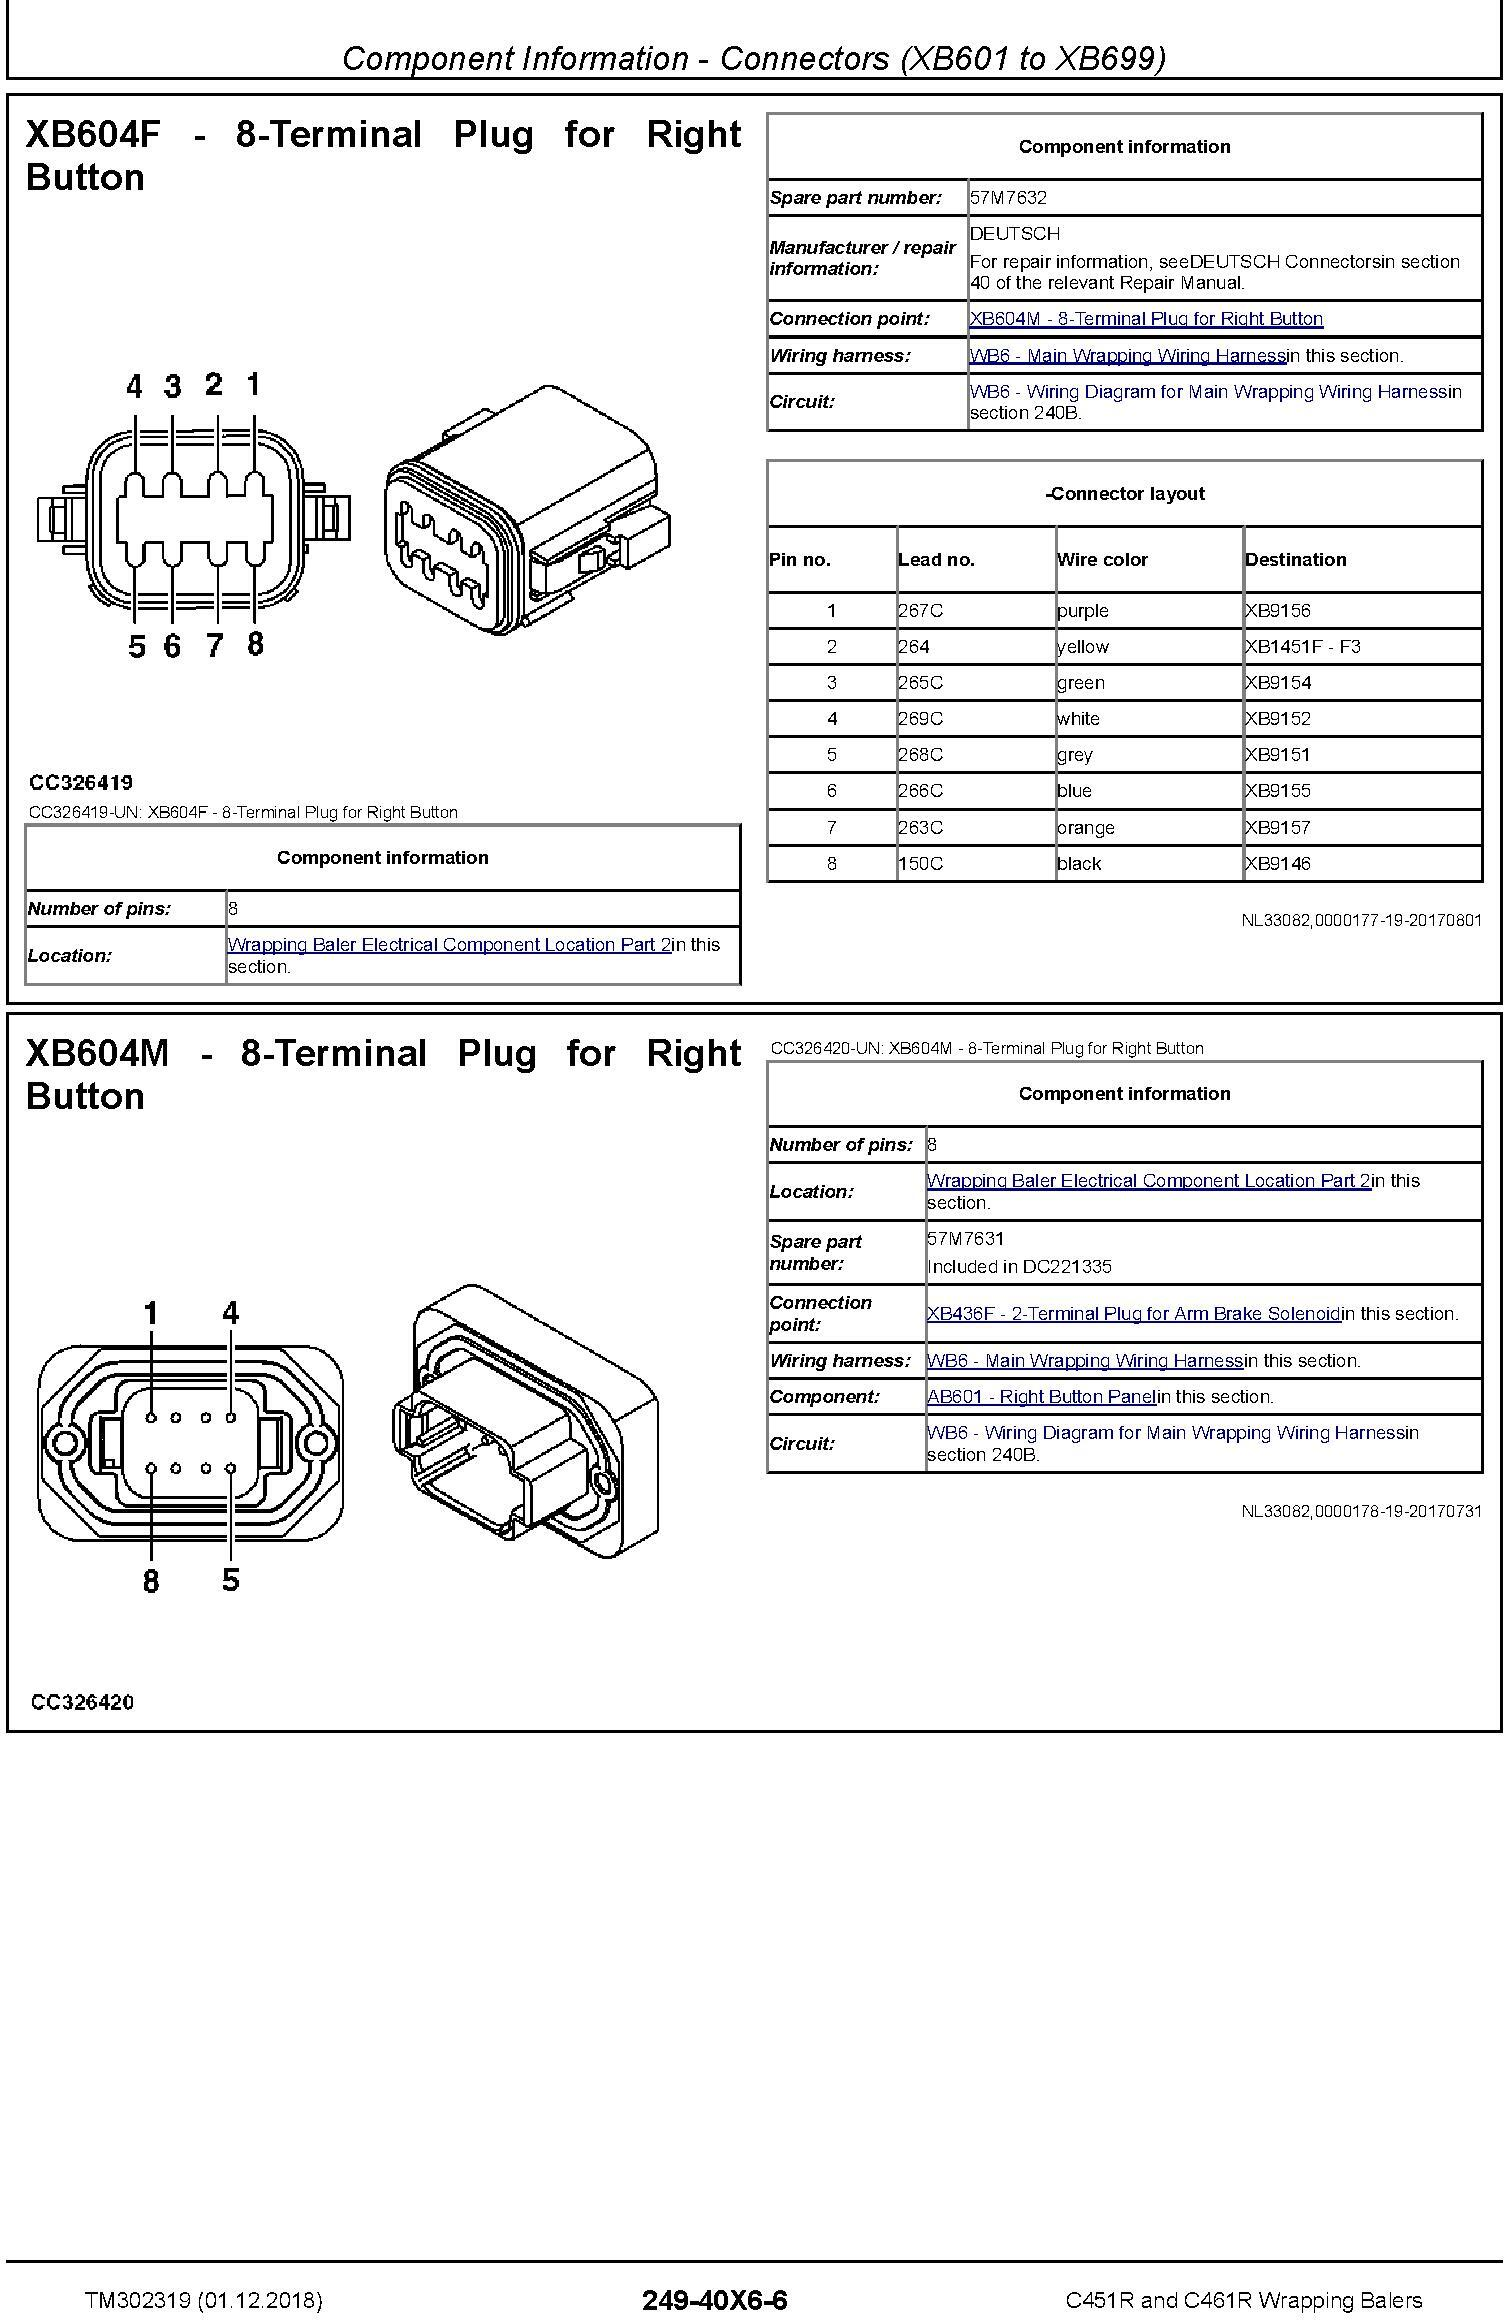 John Deere C451R and C461R Wrapping Balers Diagnostic Technical Service Manual (TM302319) - 2